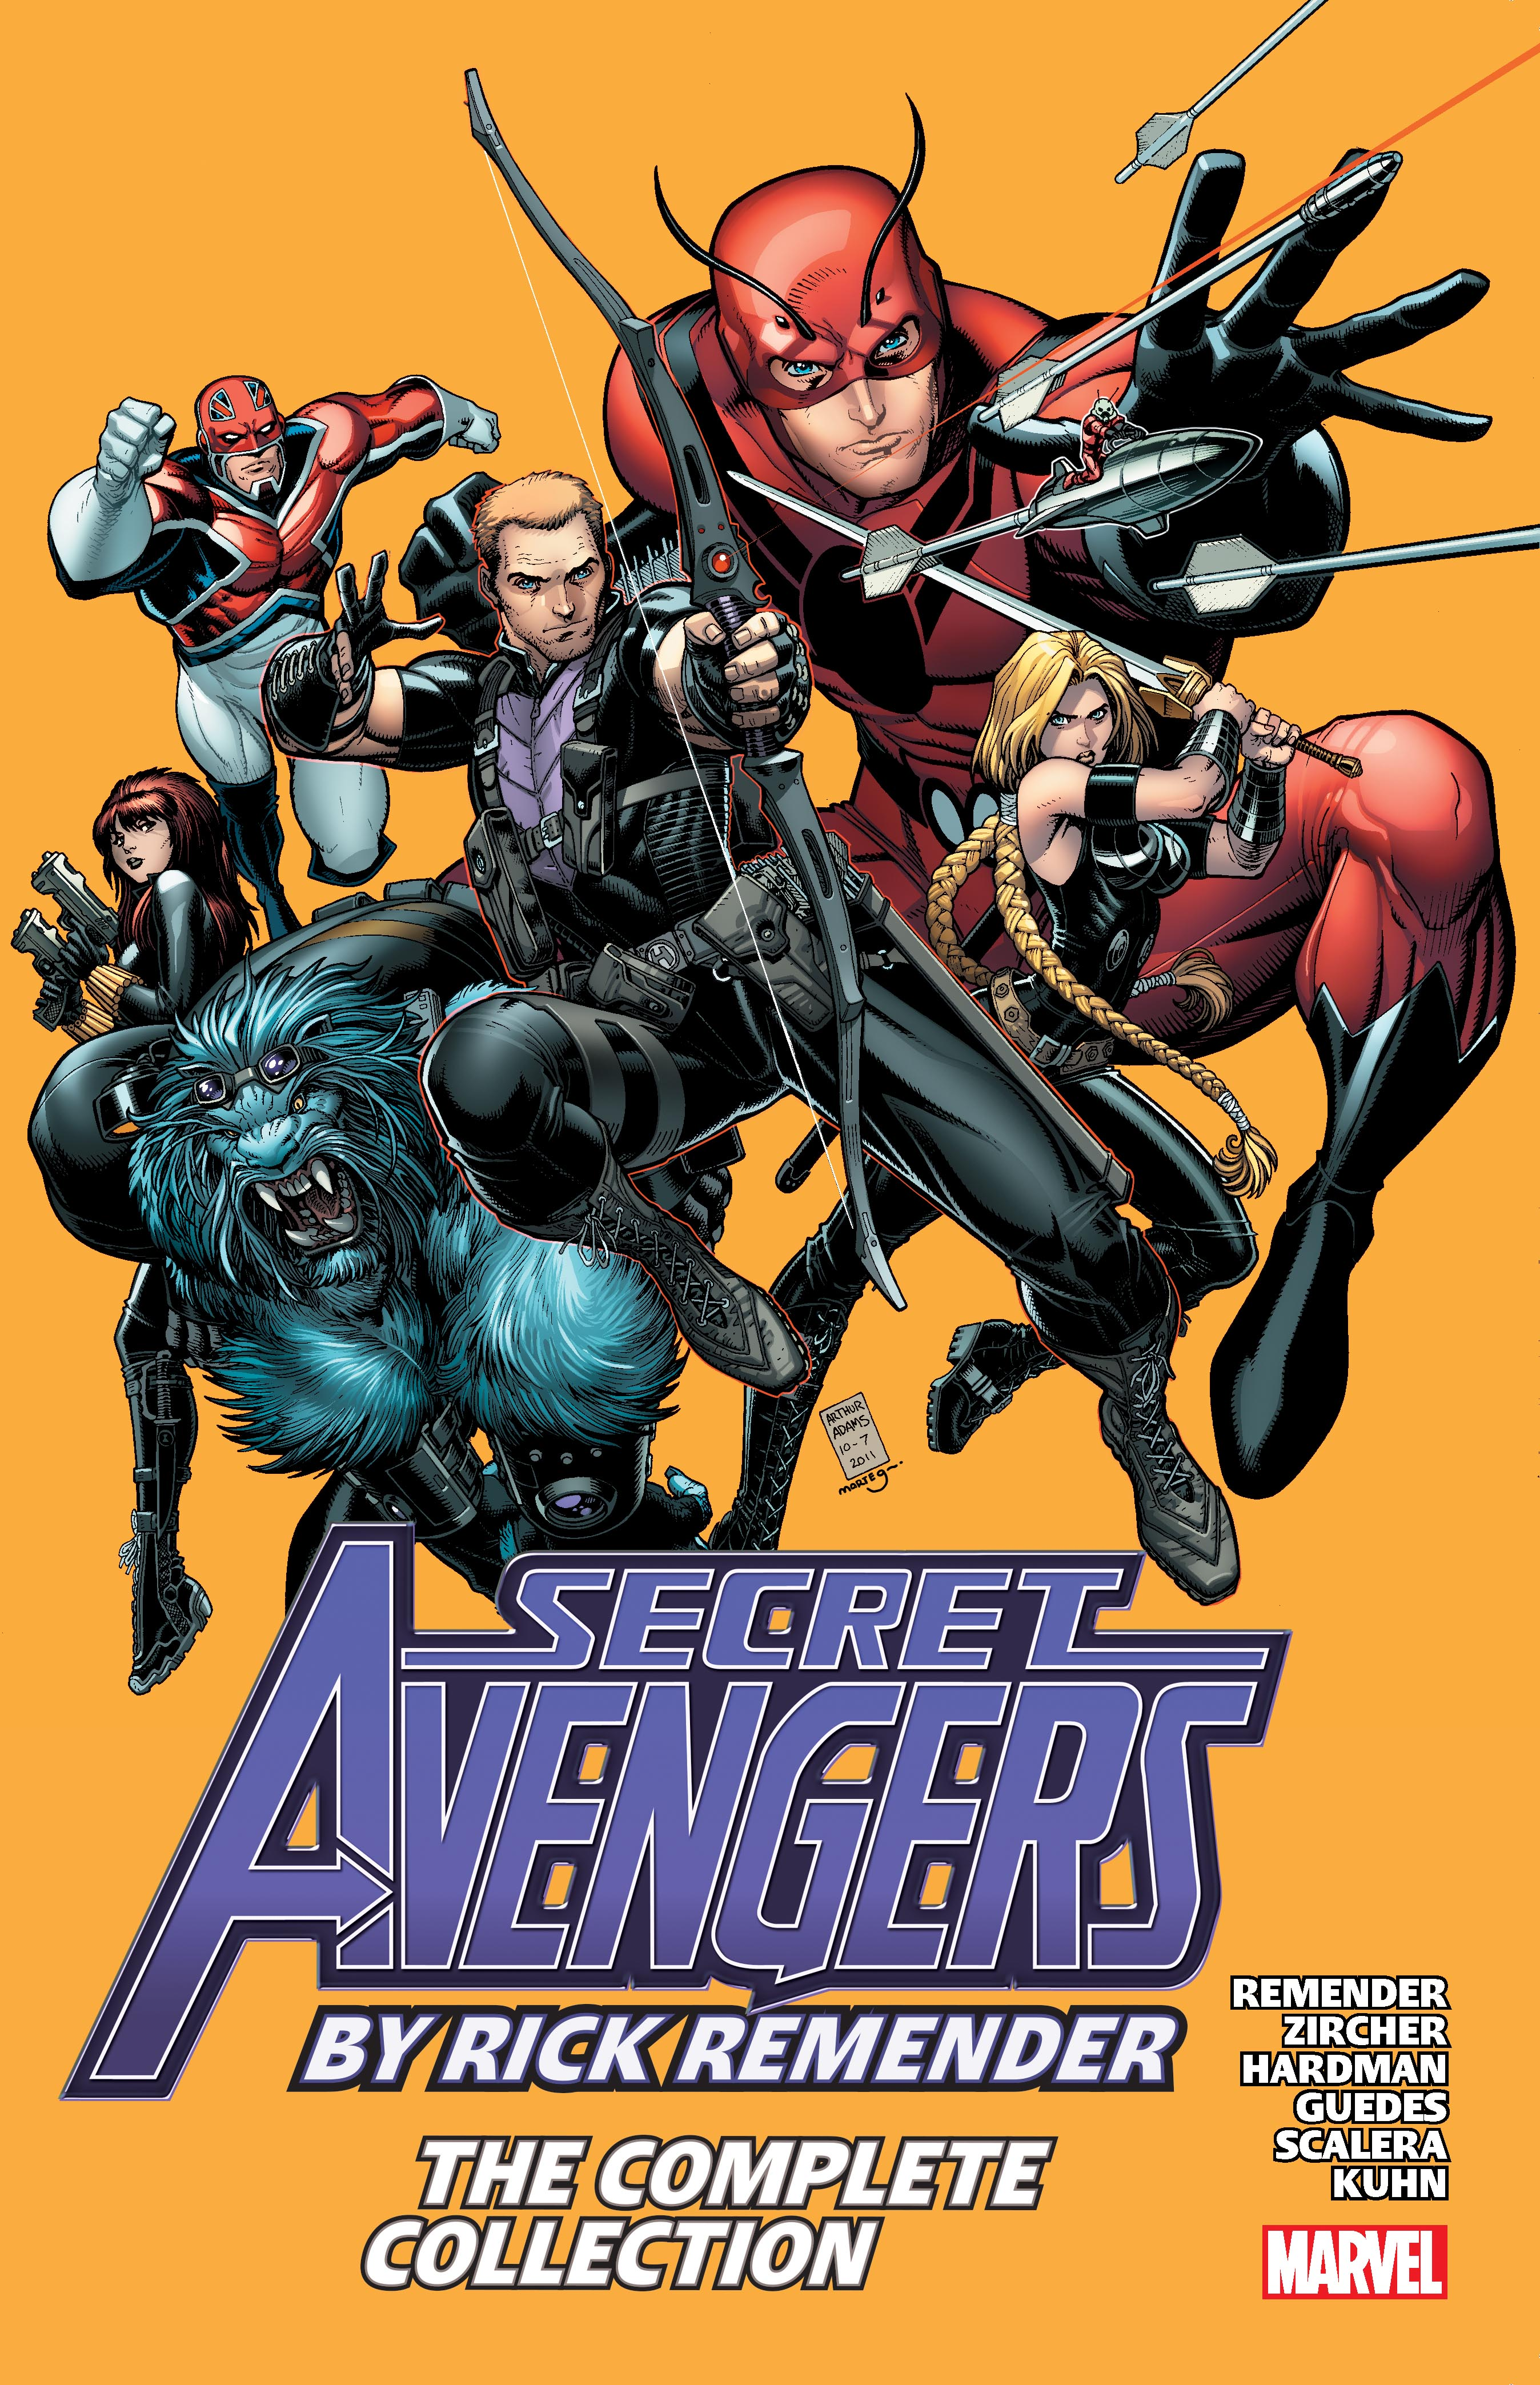 Secret Avengers by Rick Remender: The Complete Collection (Trade Paperback)